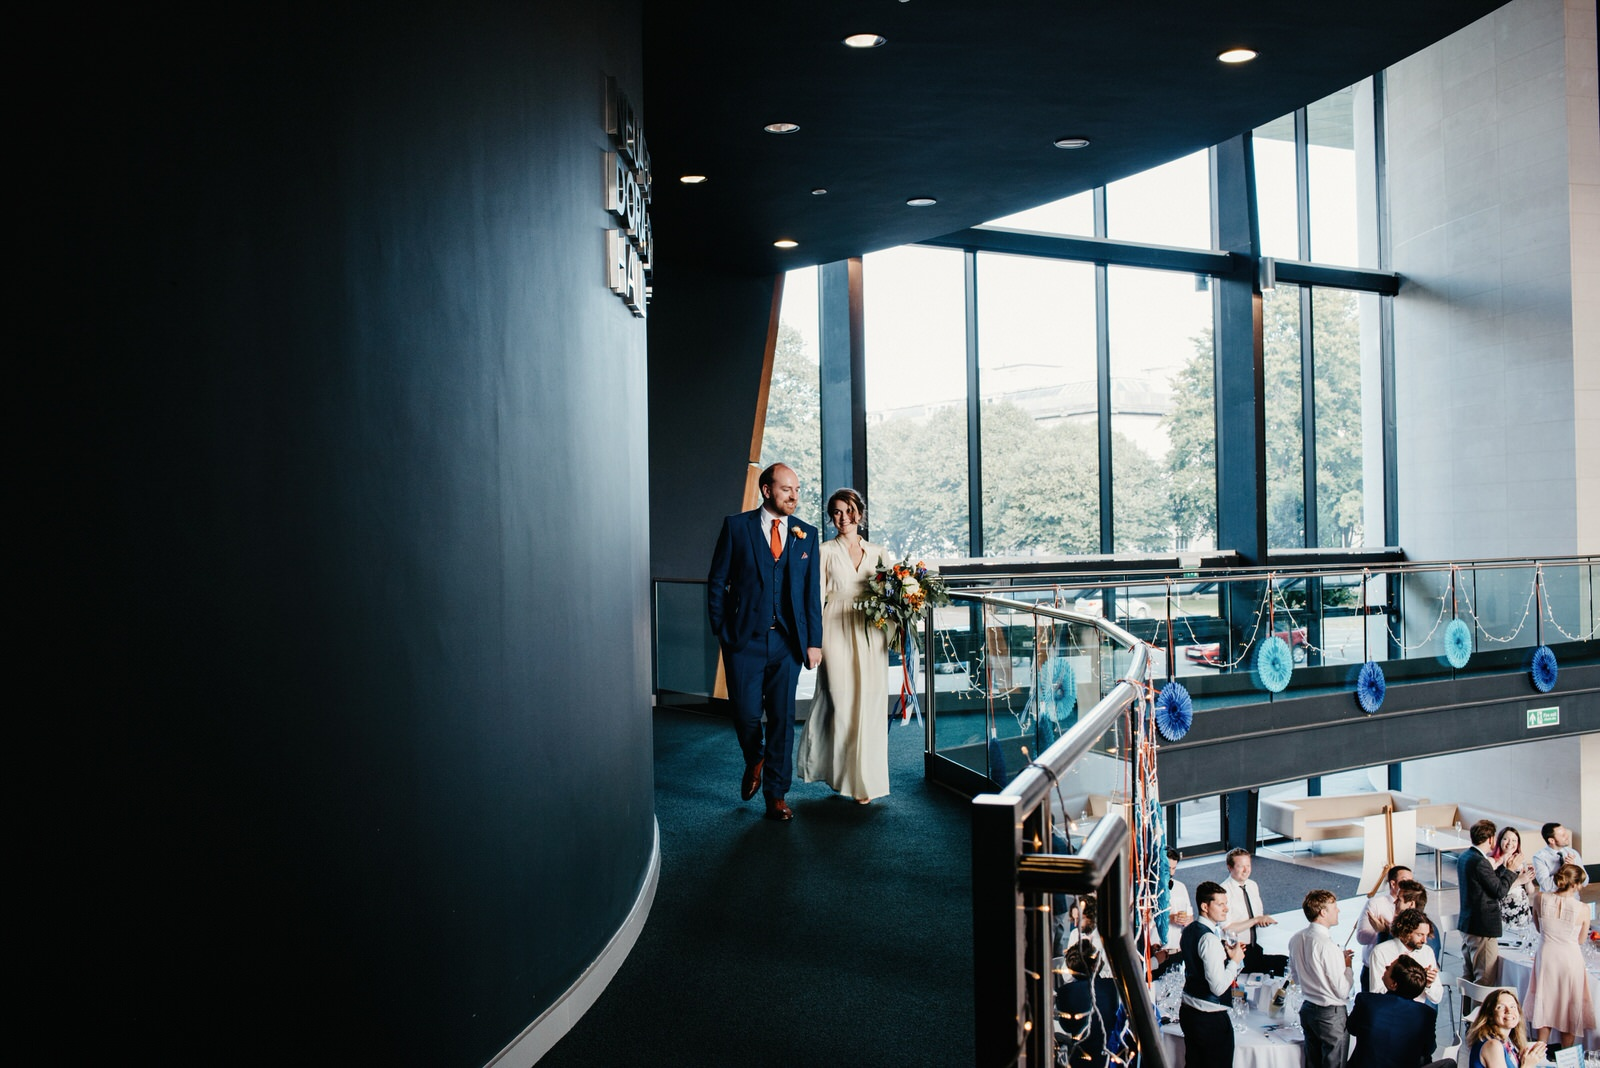 Bride and groom making grand entrance at Cardiff wedding venue the Royal College of Music and Drama